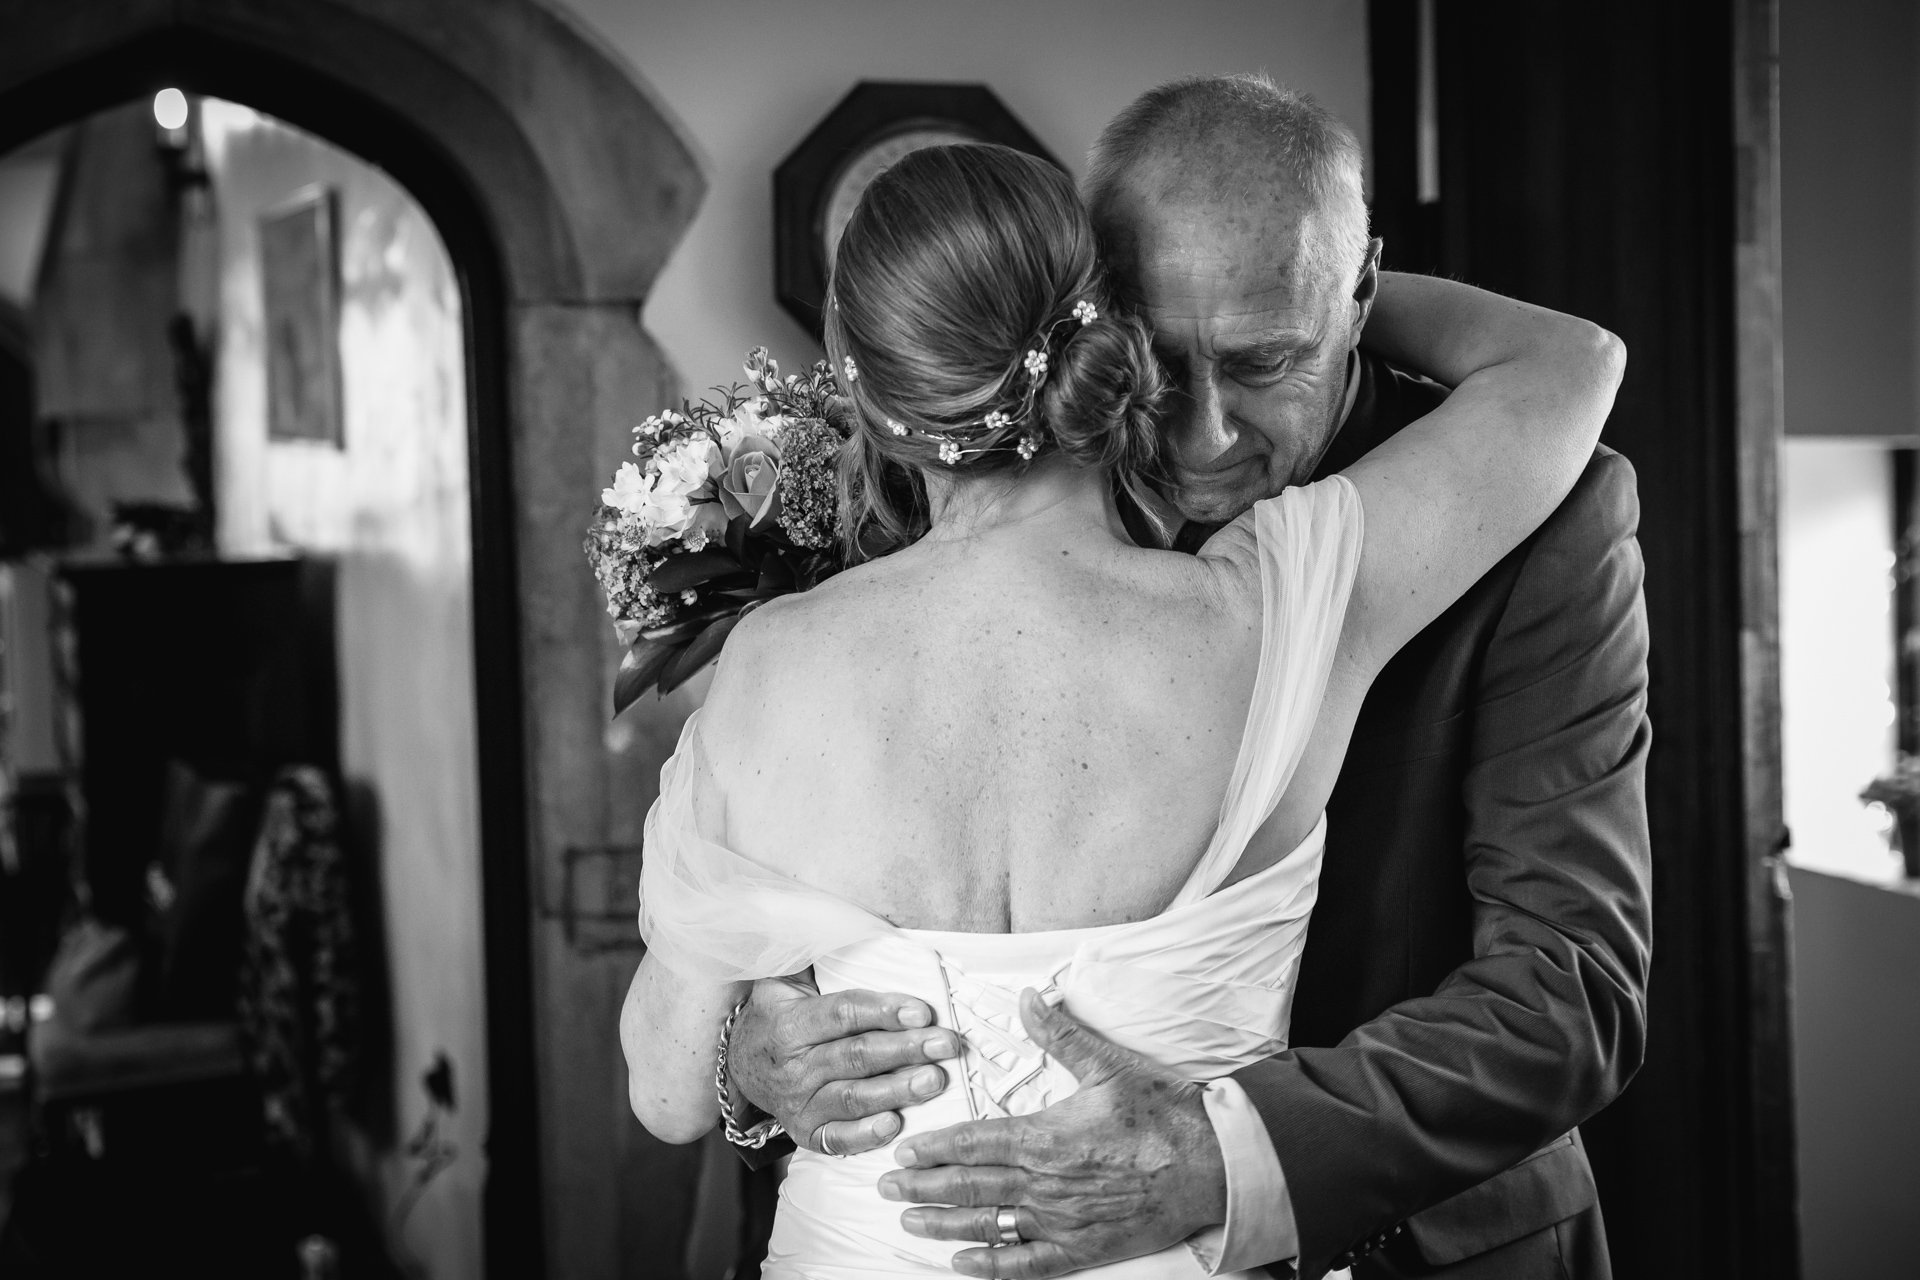 Bride and her father in an emotional embrace before her ceremony